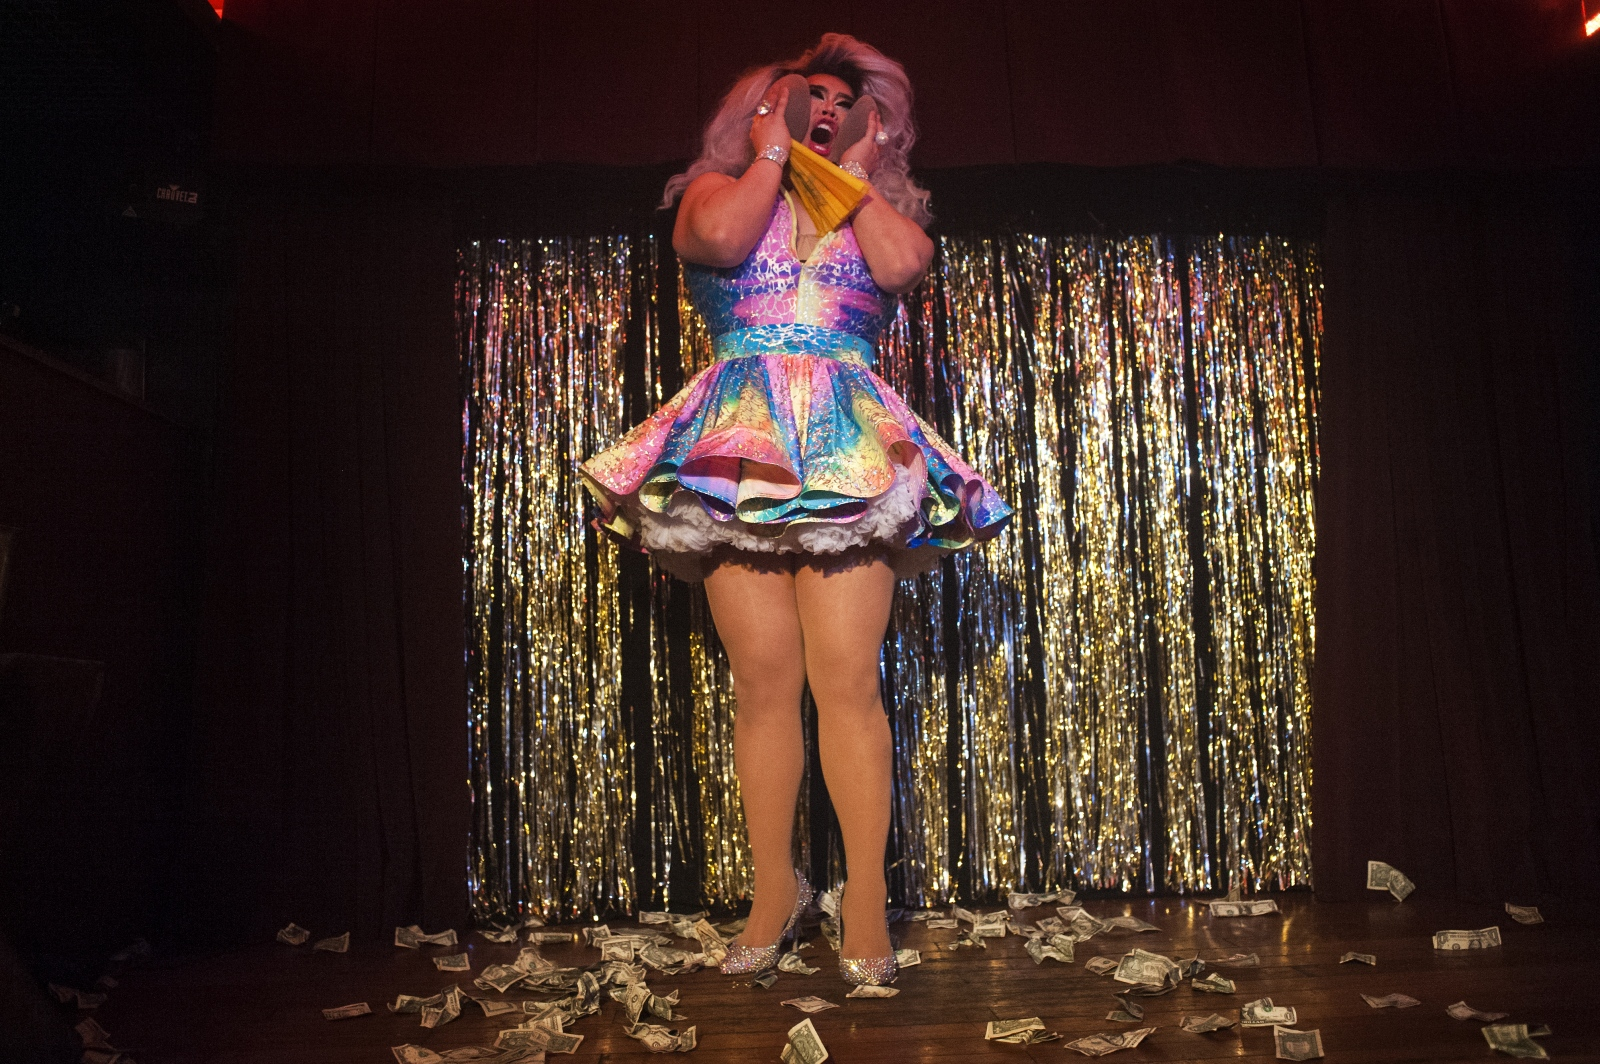 Korean drag queen Jasmine Rice Labeija at Hardware Bar, Hell's Kitchen, New York. Born in Los Angeles, Labeija moved to Korea as a toddler and grew up there until she was 16. During her youth, LGBTQ topics were taboo in Korea -- but more than that, it was unheard of, and most people didn't think about a queer community existing in the world or in Korea.